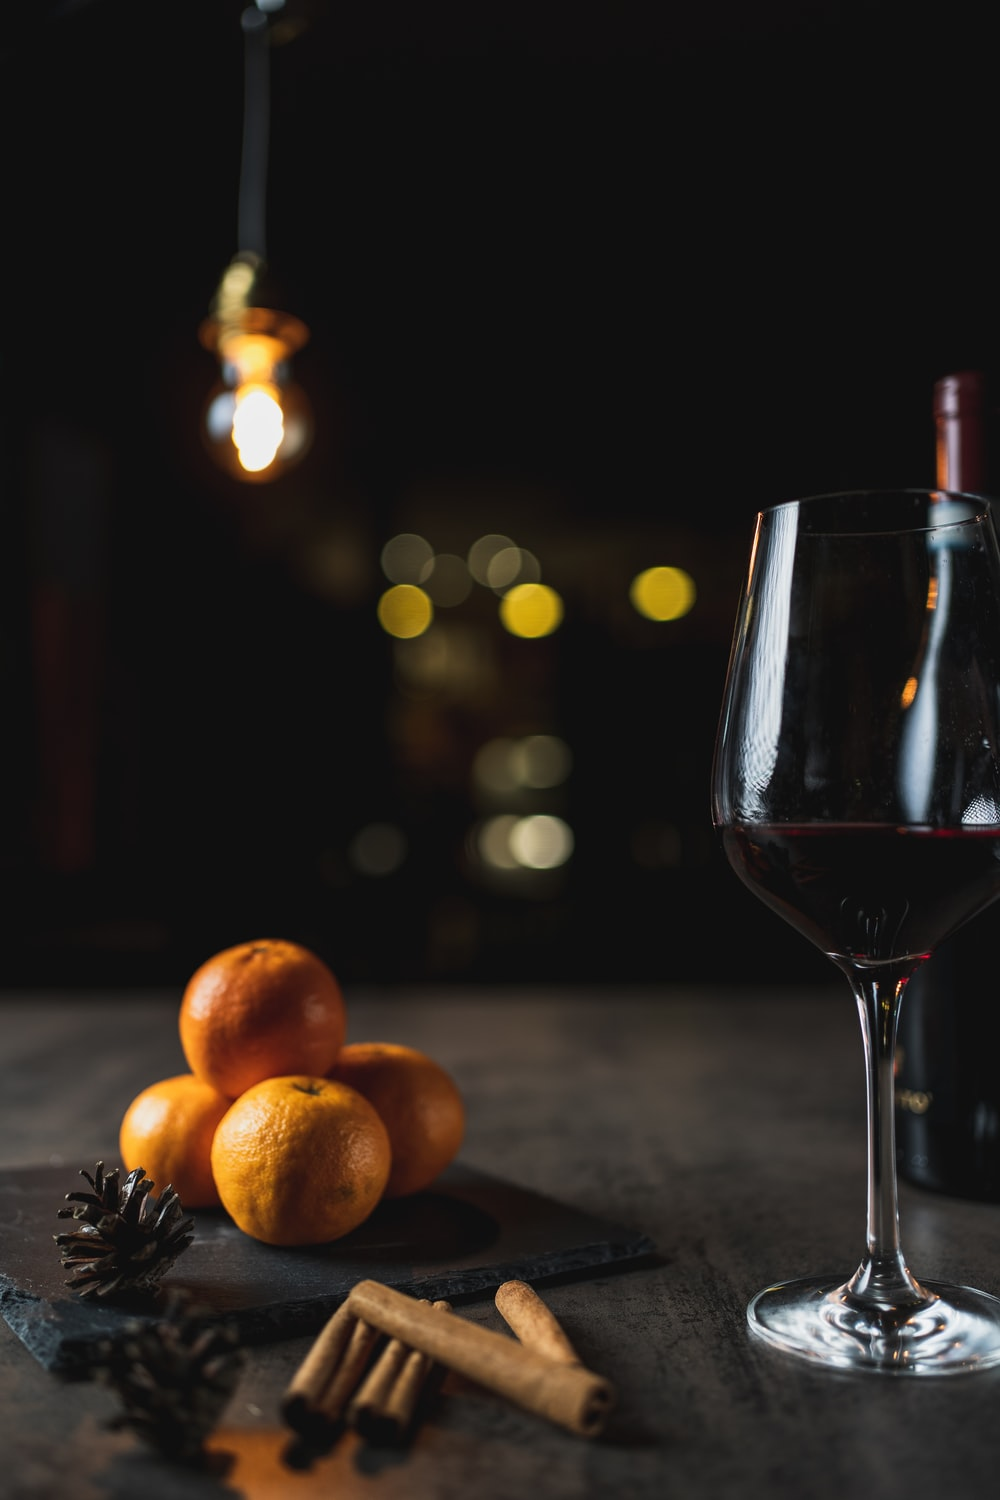 clear wine glass with red wine on brown wooden table